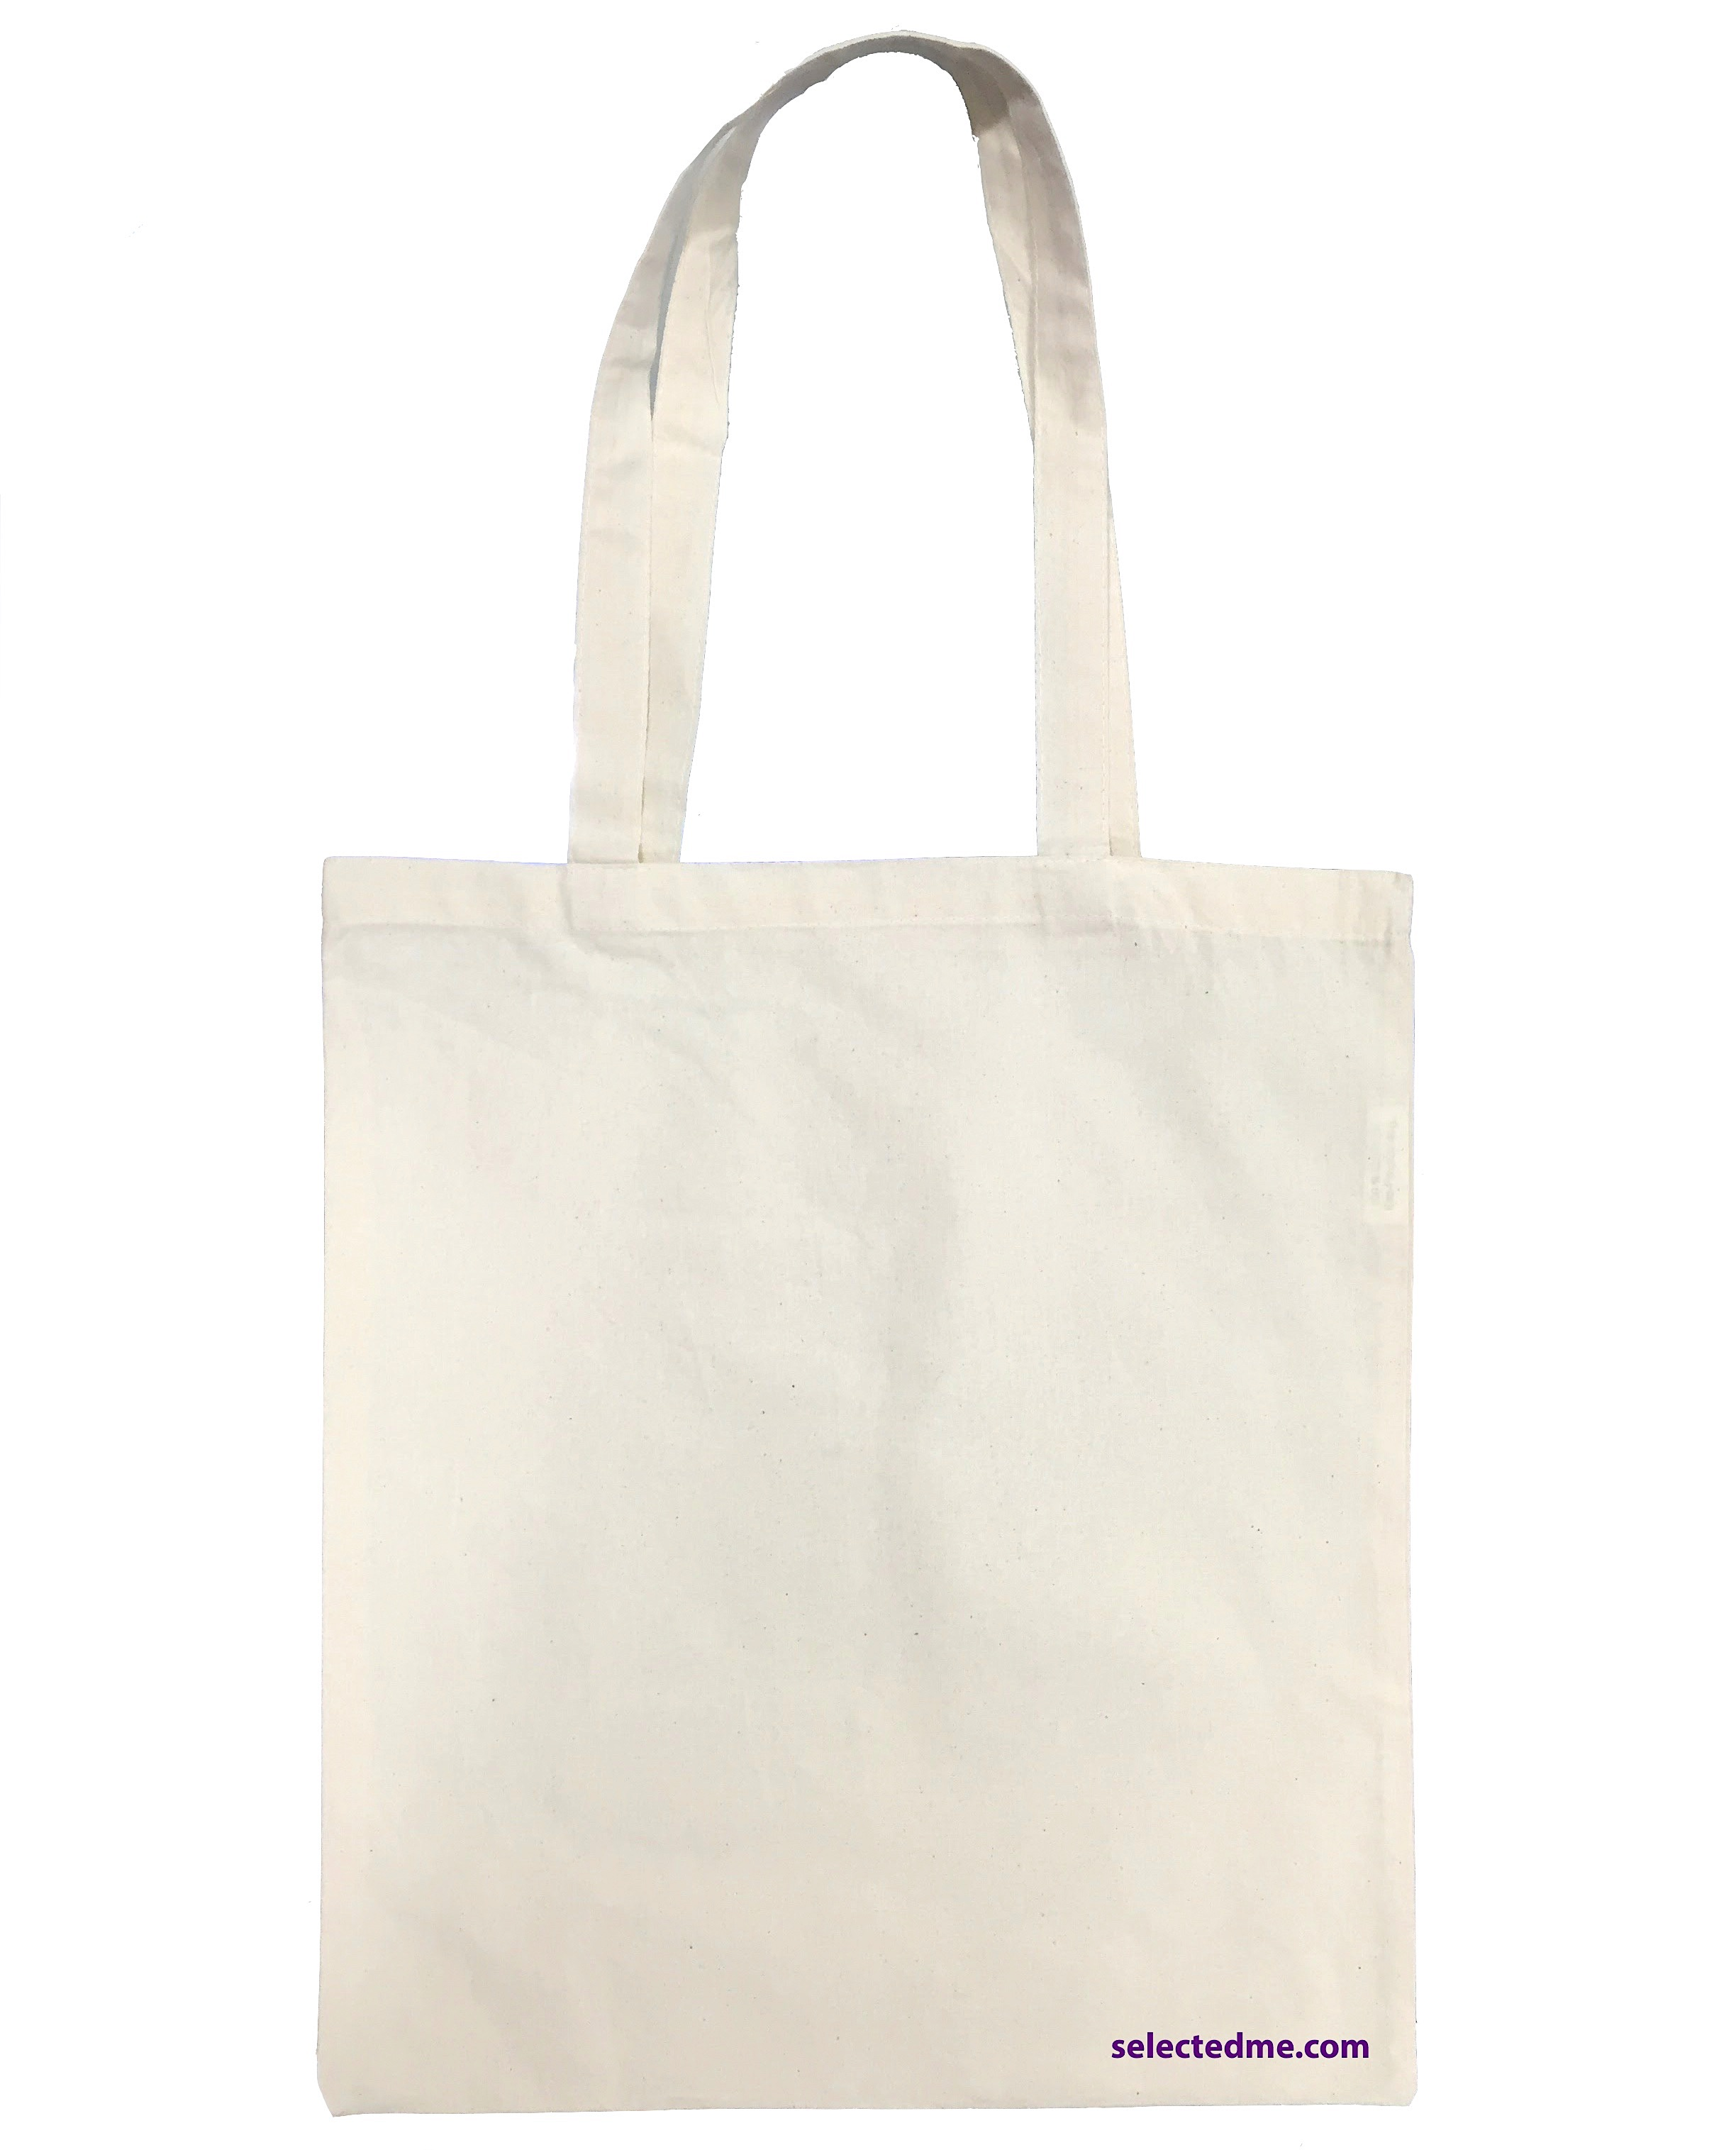 5f1274eed0 Tote Bags - Cotton Tote Bags, Canvas Bags wholesale